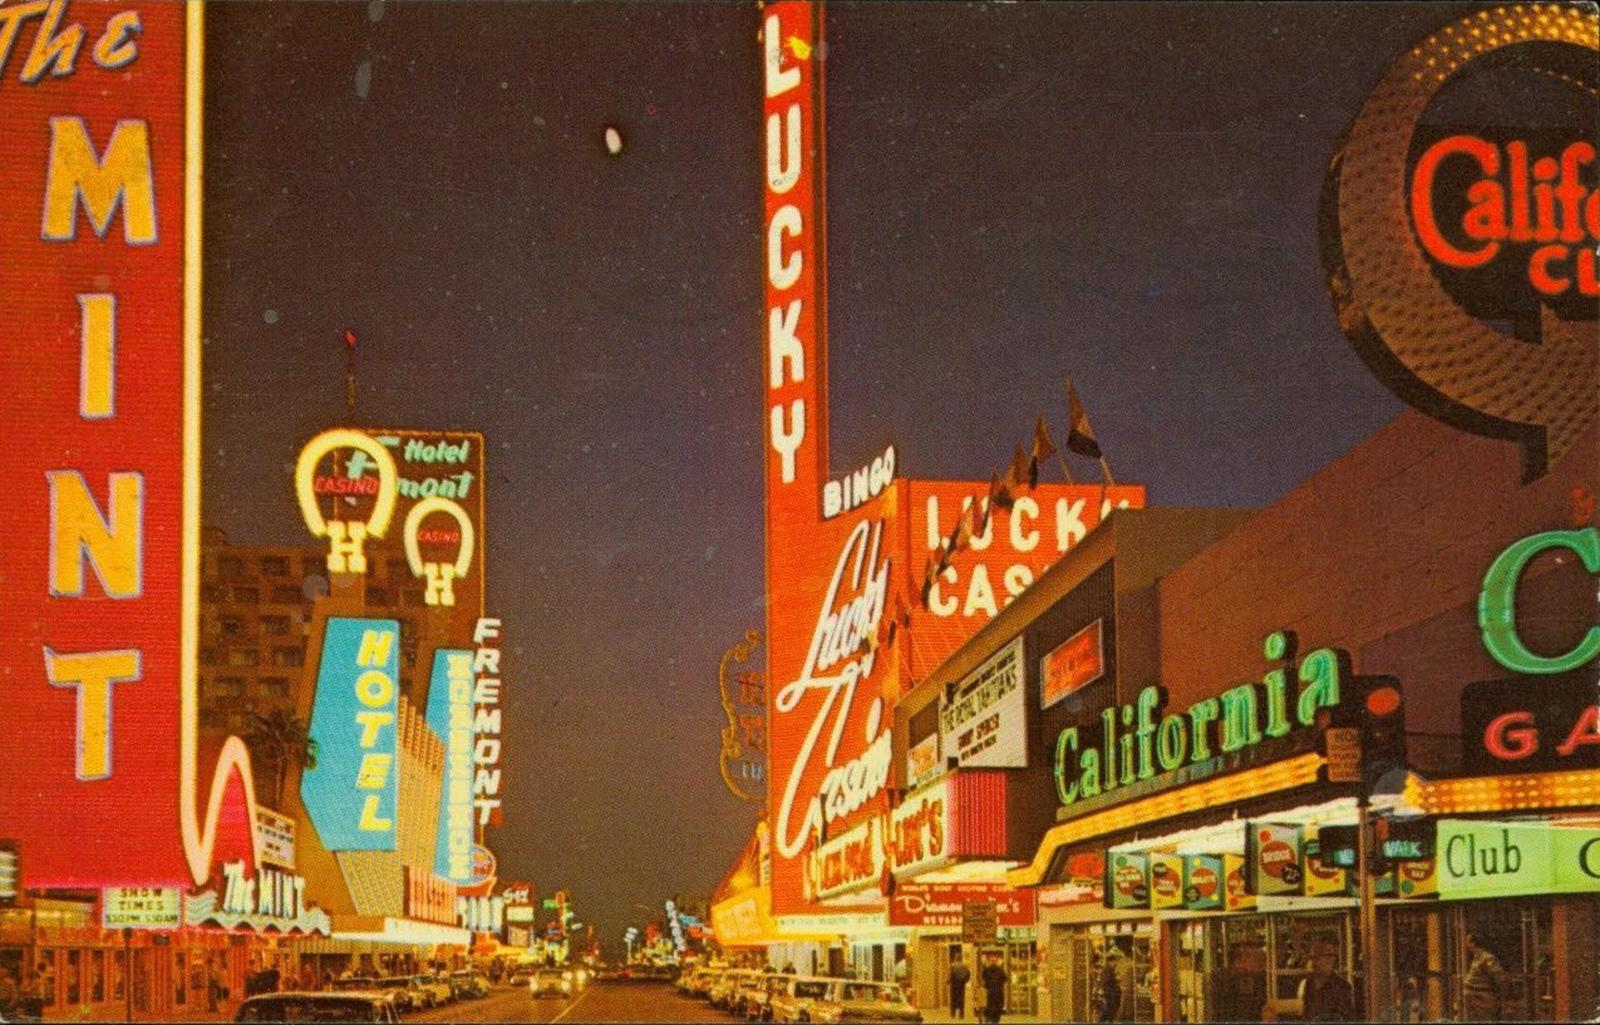 A 1950s city street with many lit up signs including Lucky Casino, The Mint, and hotels.